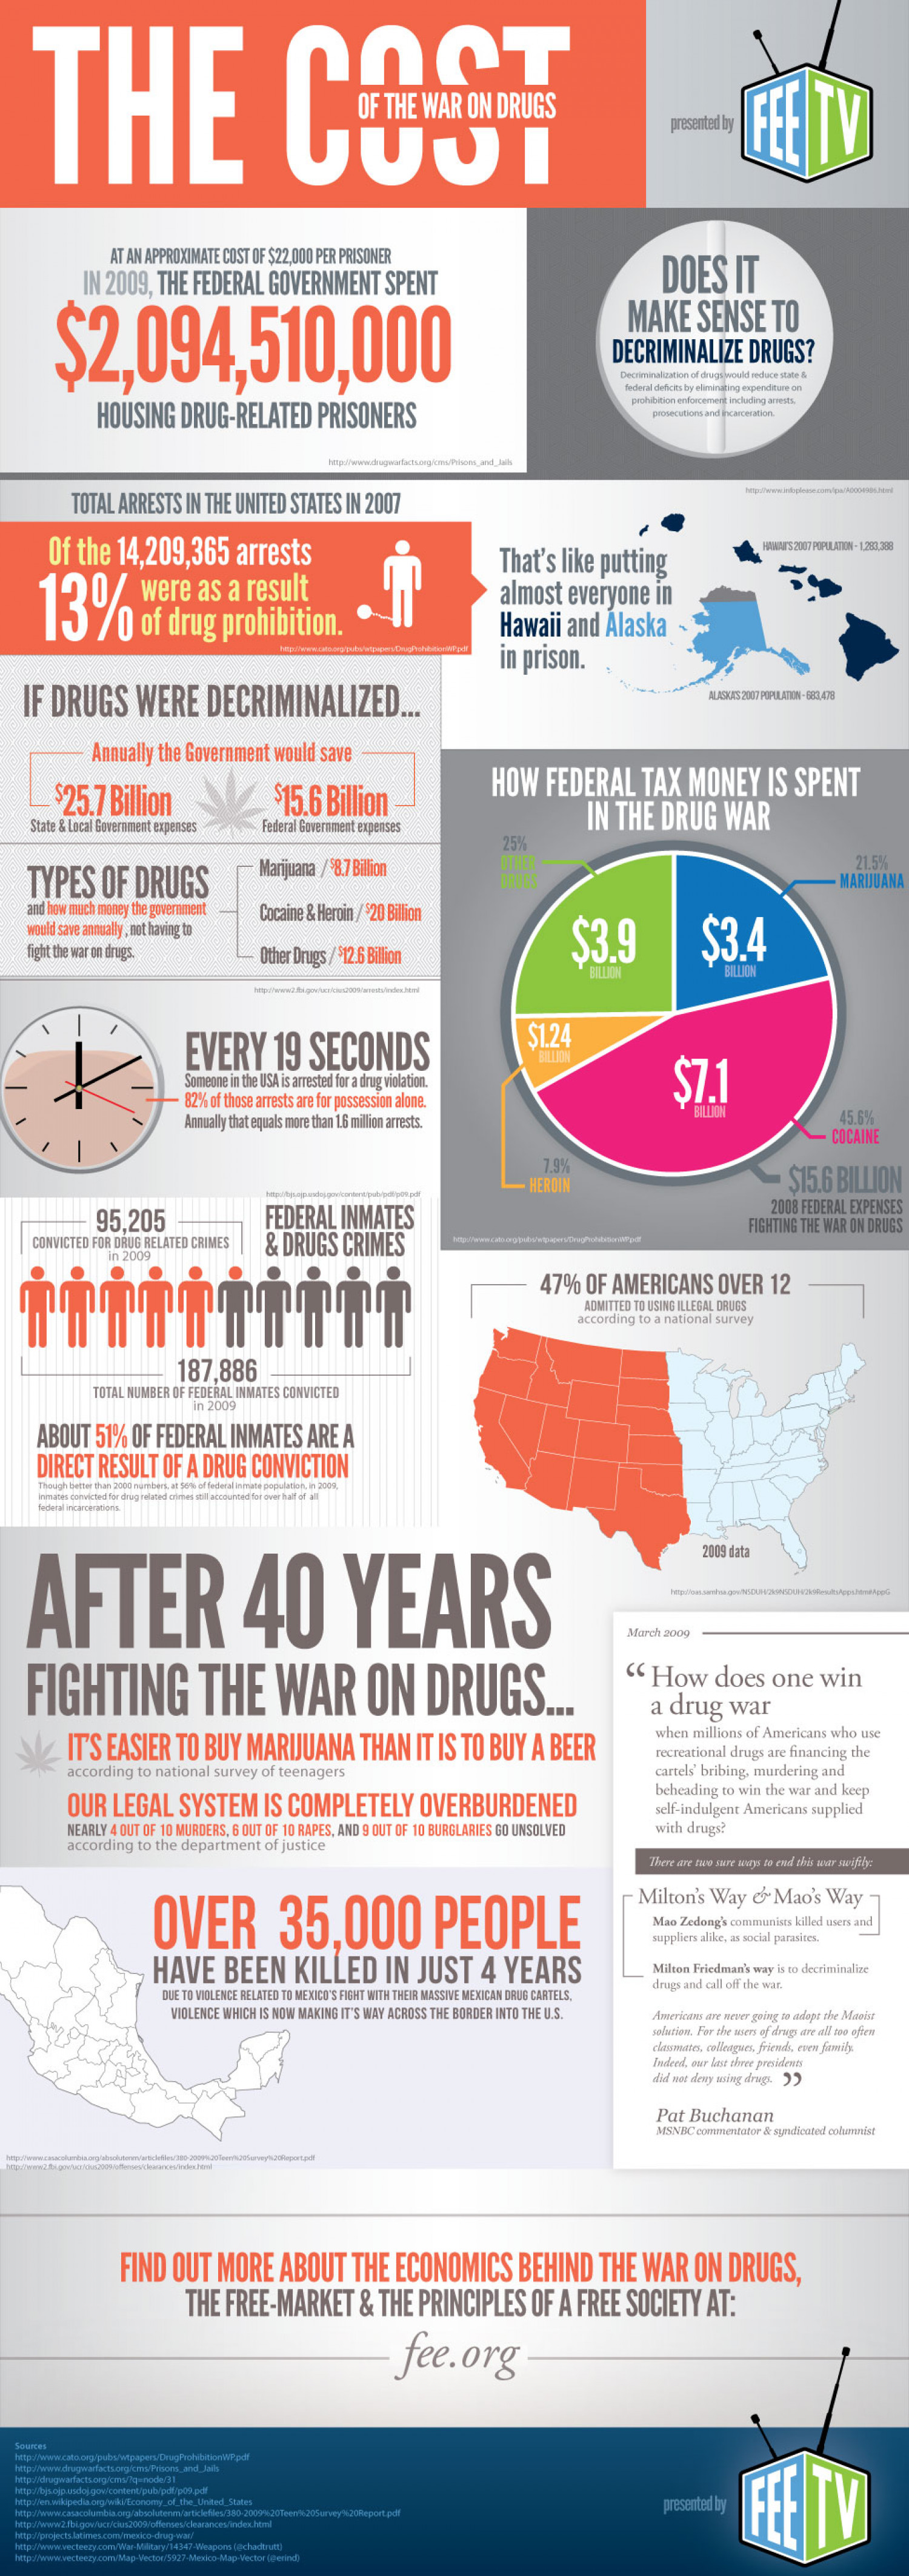 The Cost of the War on Drugs Infographic